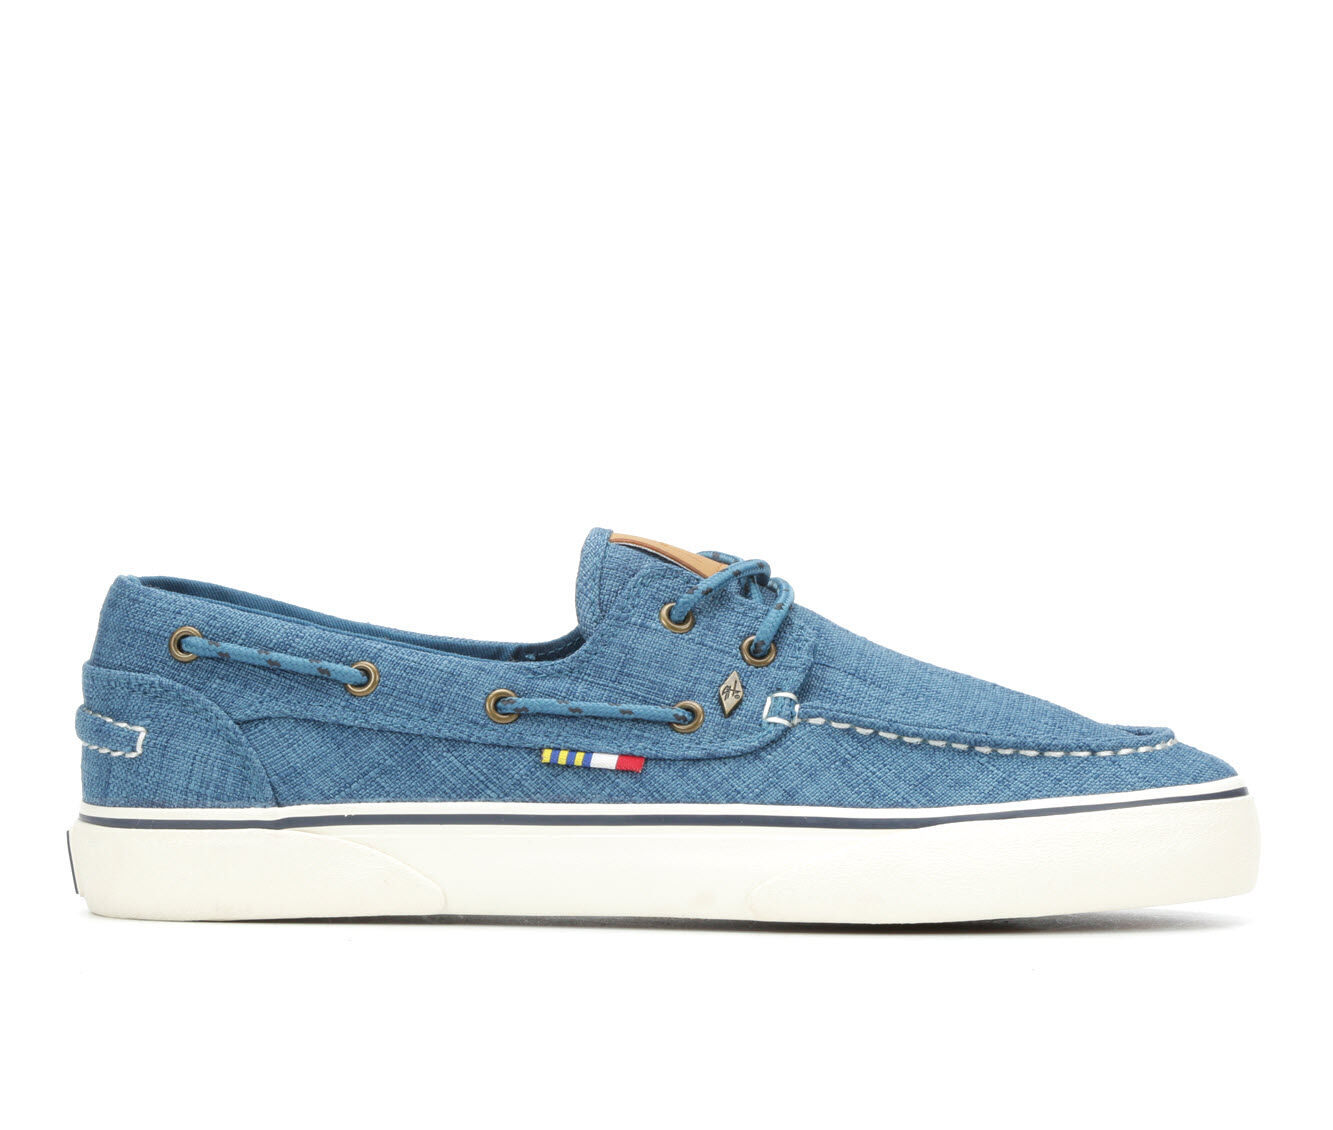 new arrivals Men's Guy Harvey Gulf Linen Casual Shoes Blue/Navy